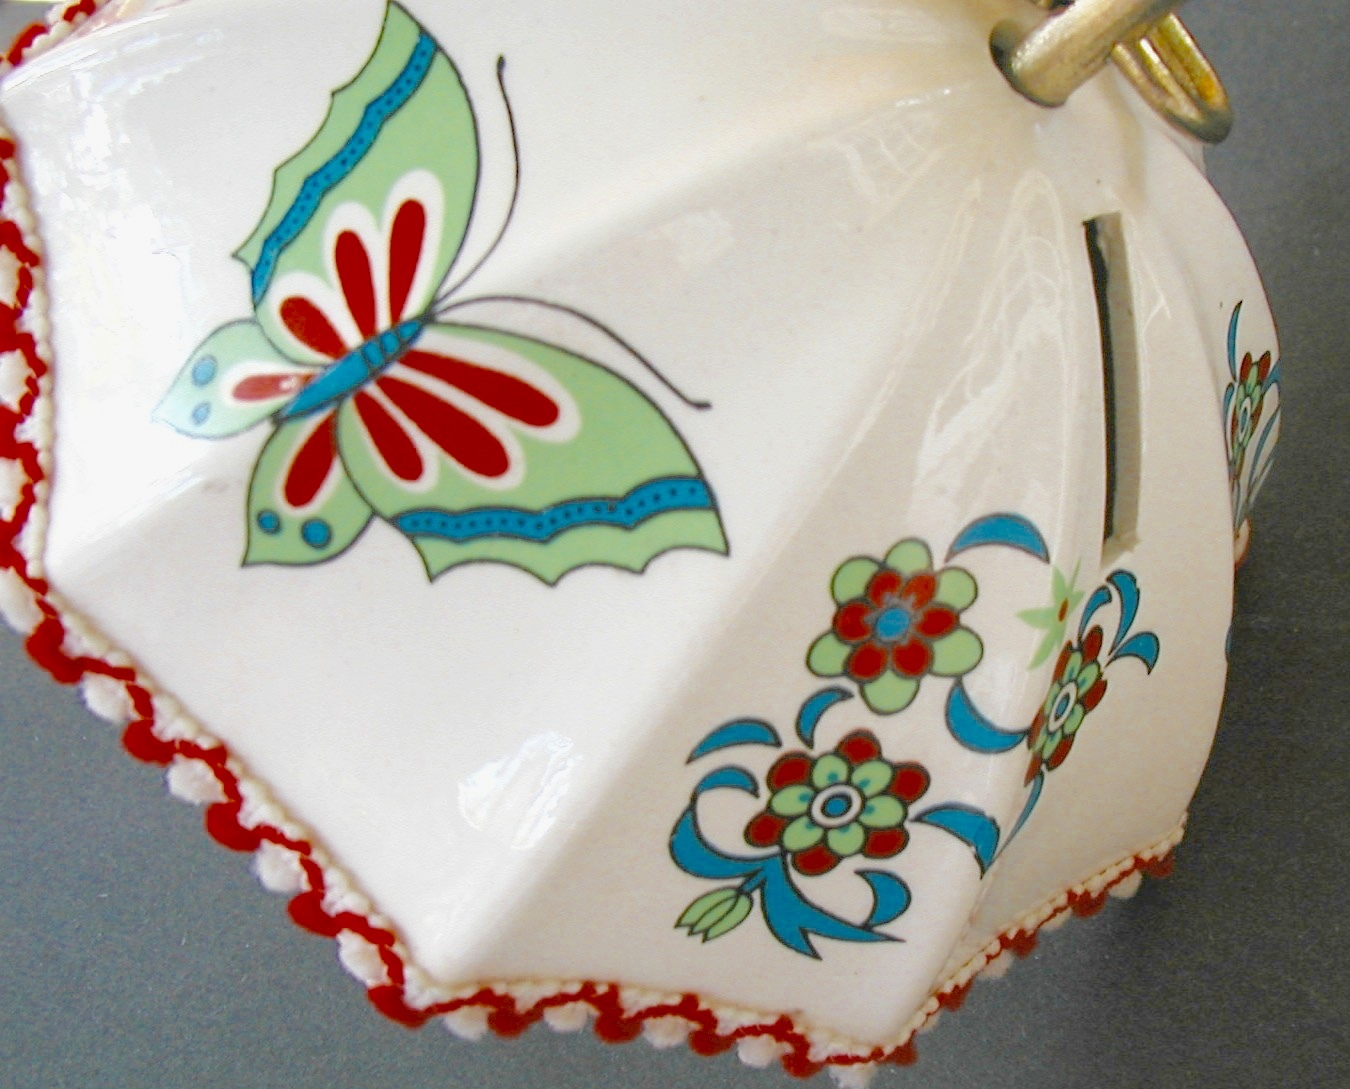 Vintage Bank Umbrella Butterflies and Bows Ceramic